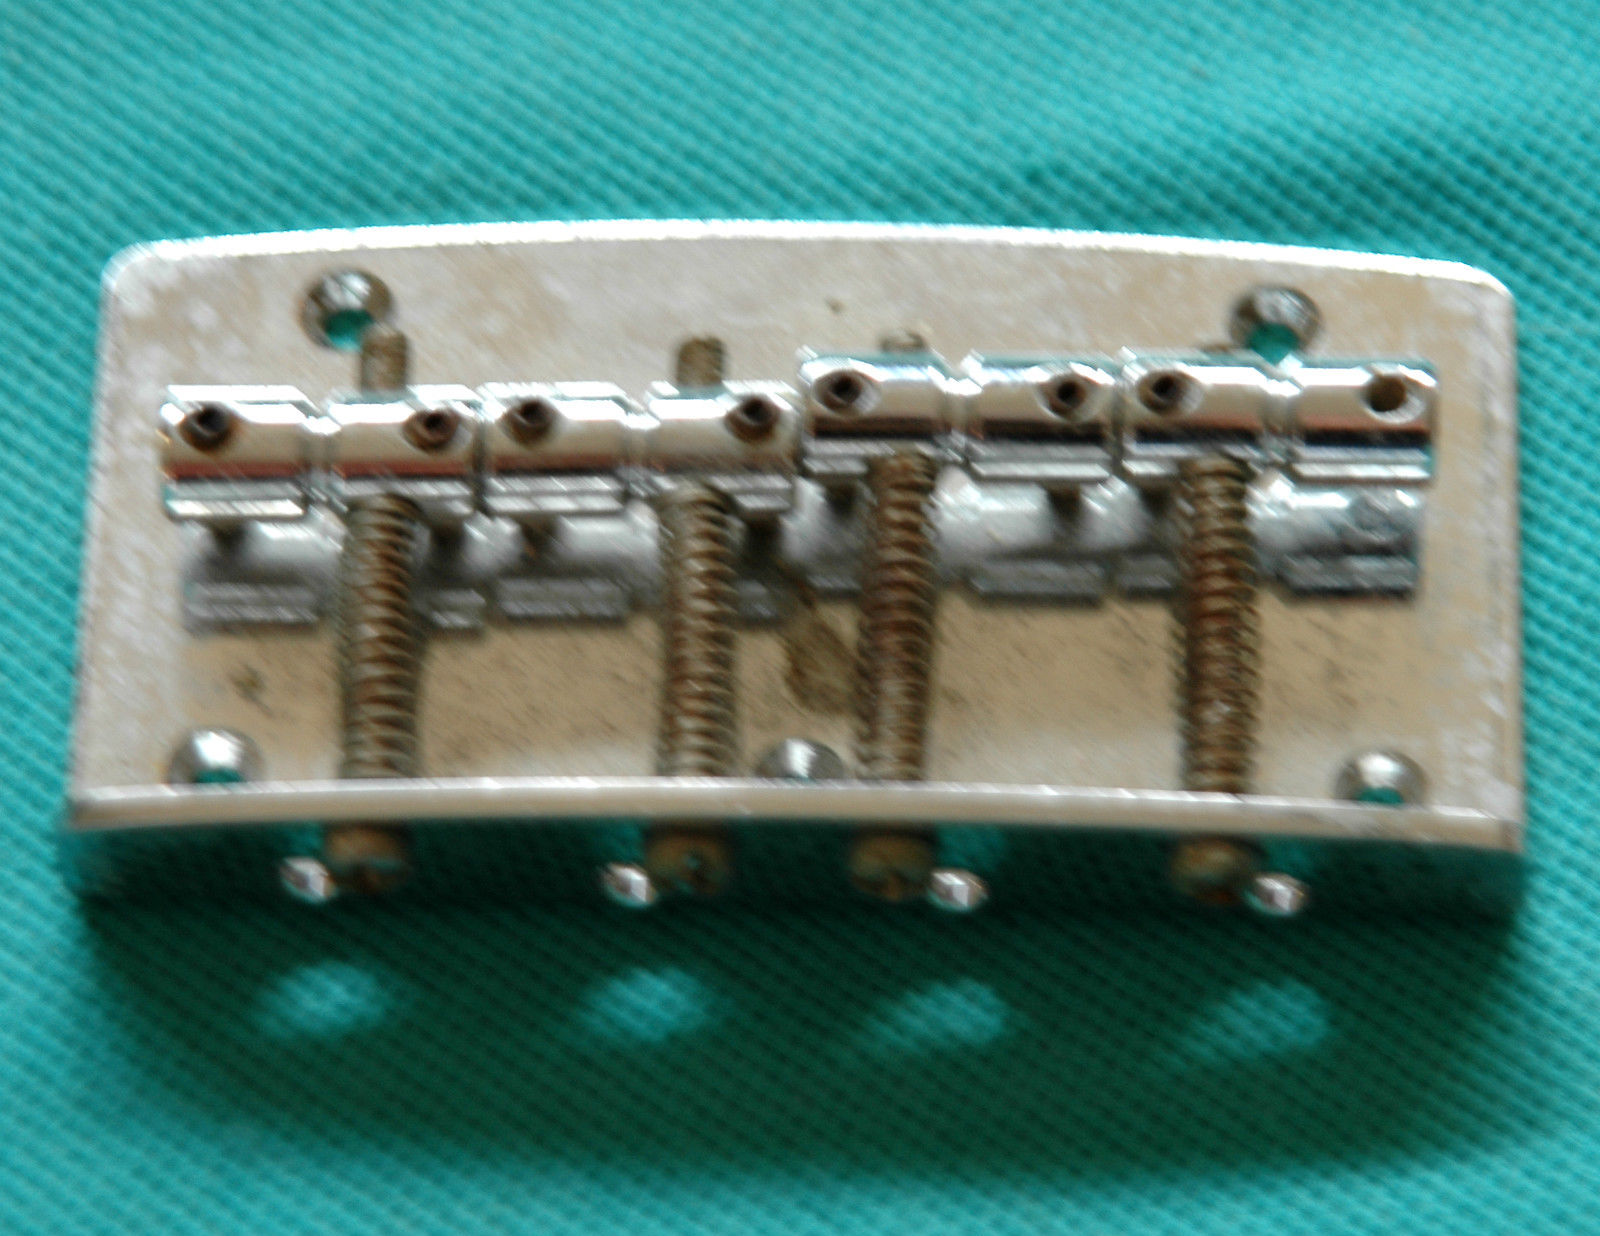 !989 Peavey Foundation Bass Guitar Original Bridge Made in USA